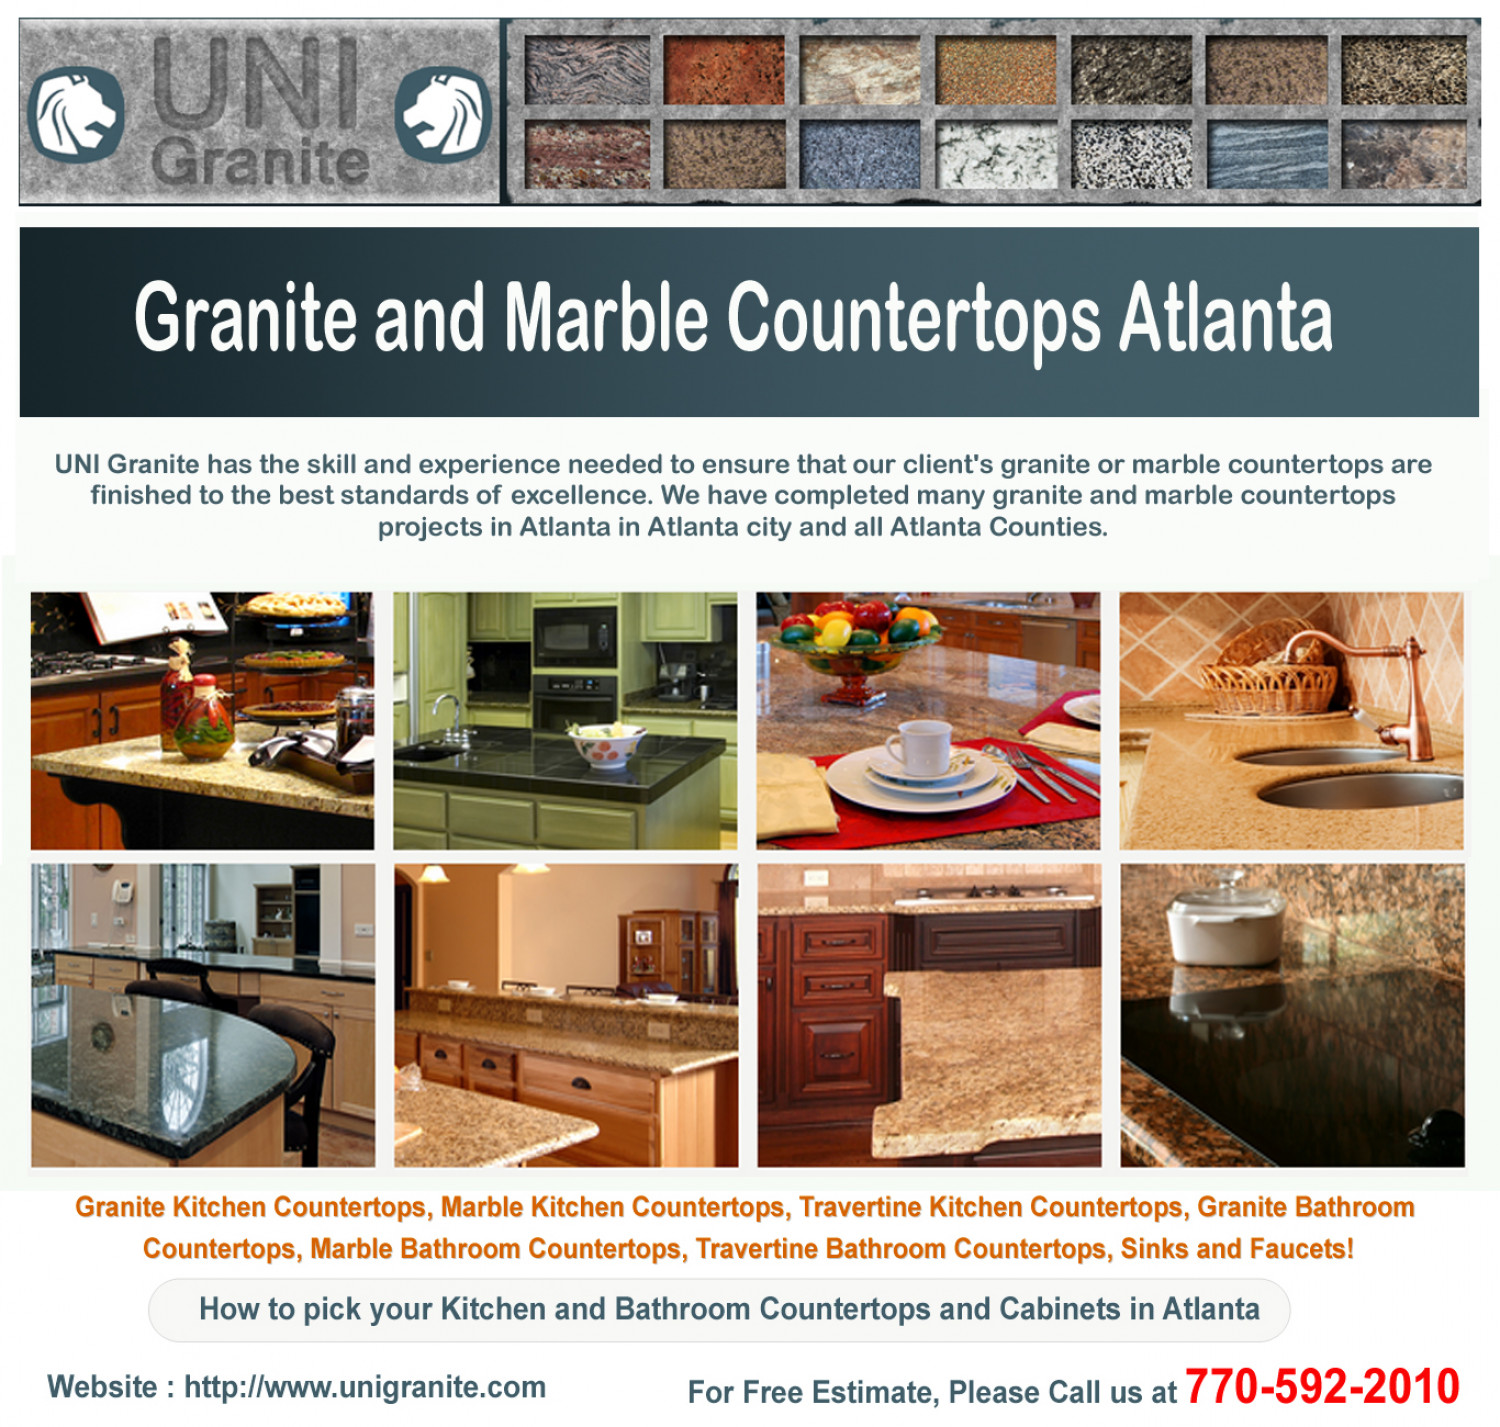 Granite Countertops Atlanta : Granite and Marble Countertops Atlanta Infographic